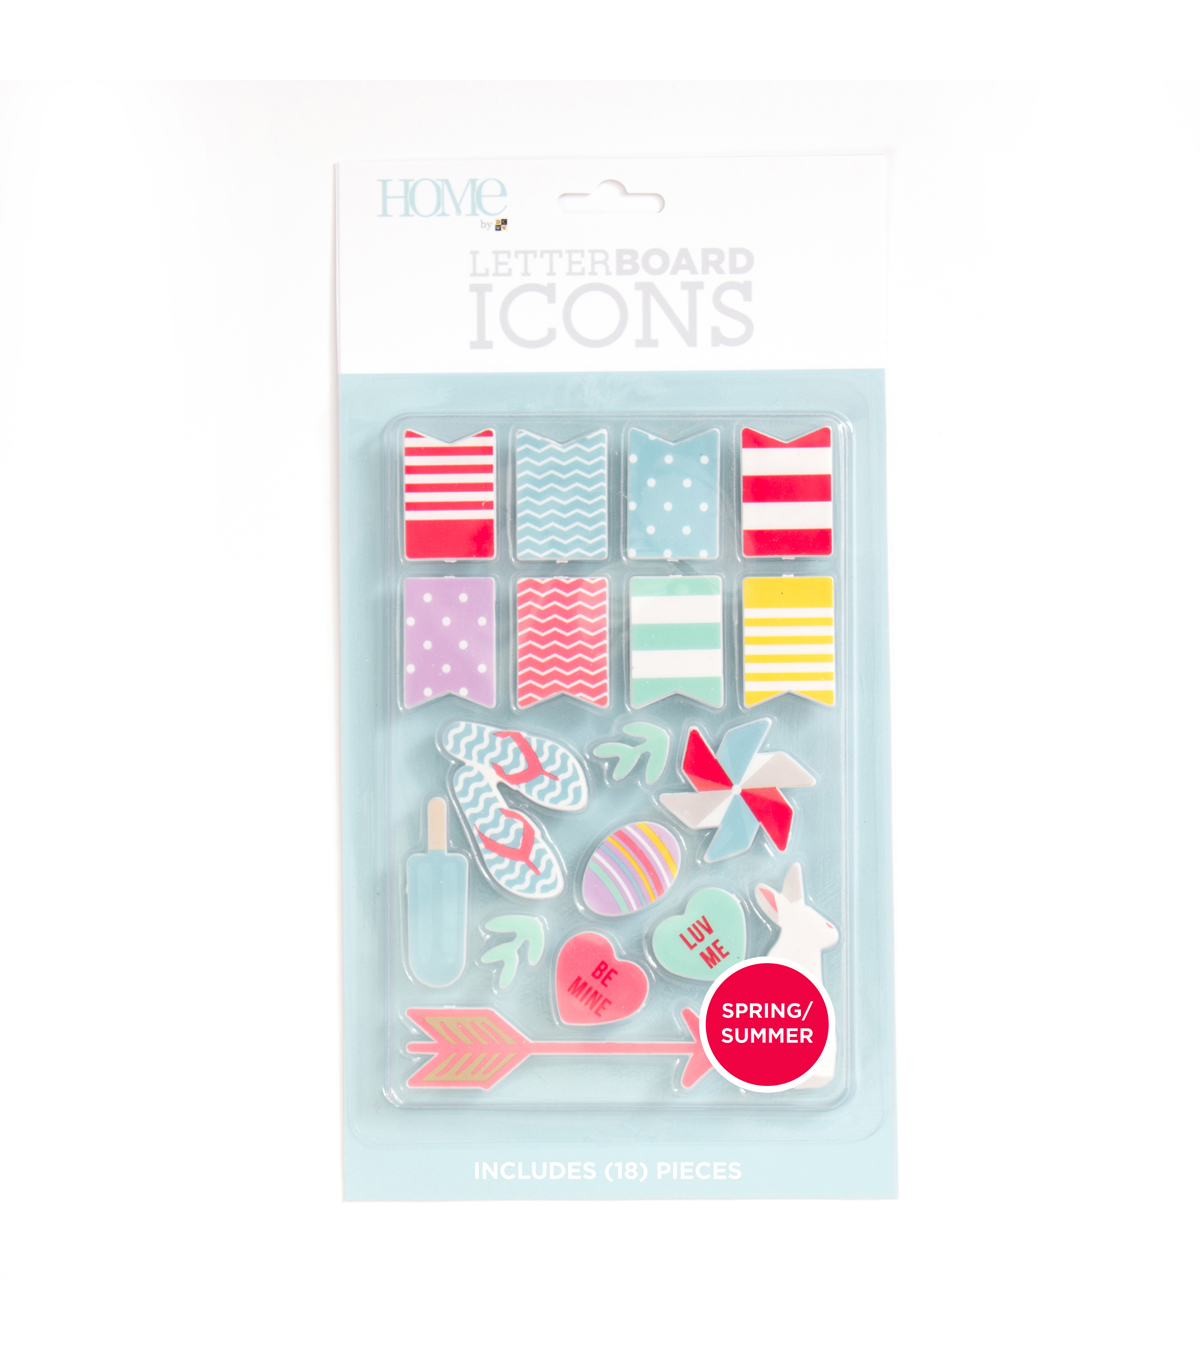 DCWV Home 18 Pack Letter Board Icons-Spring & Summer